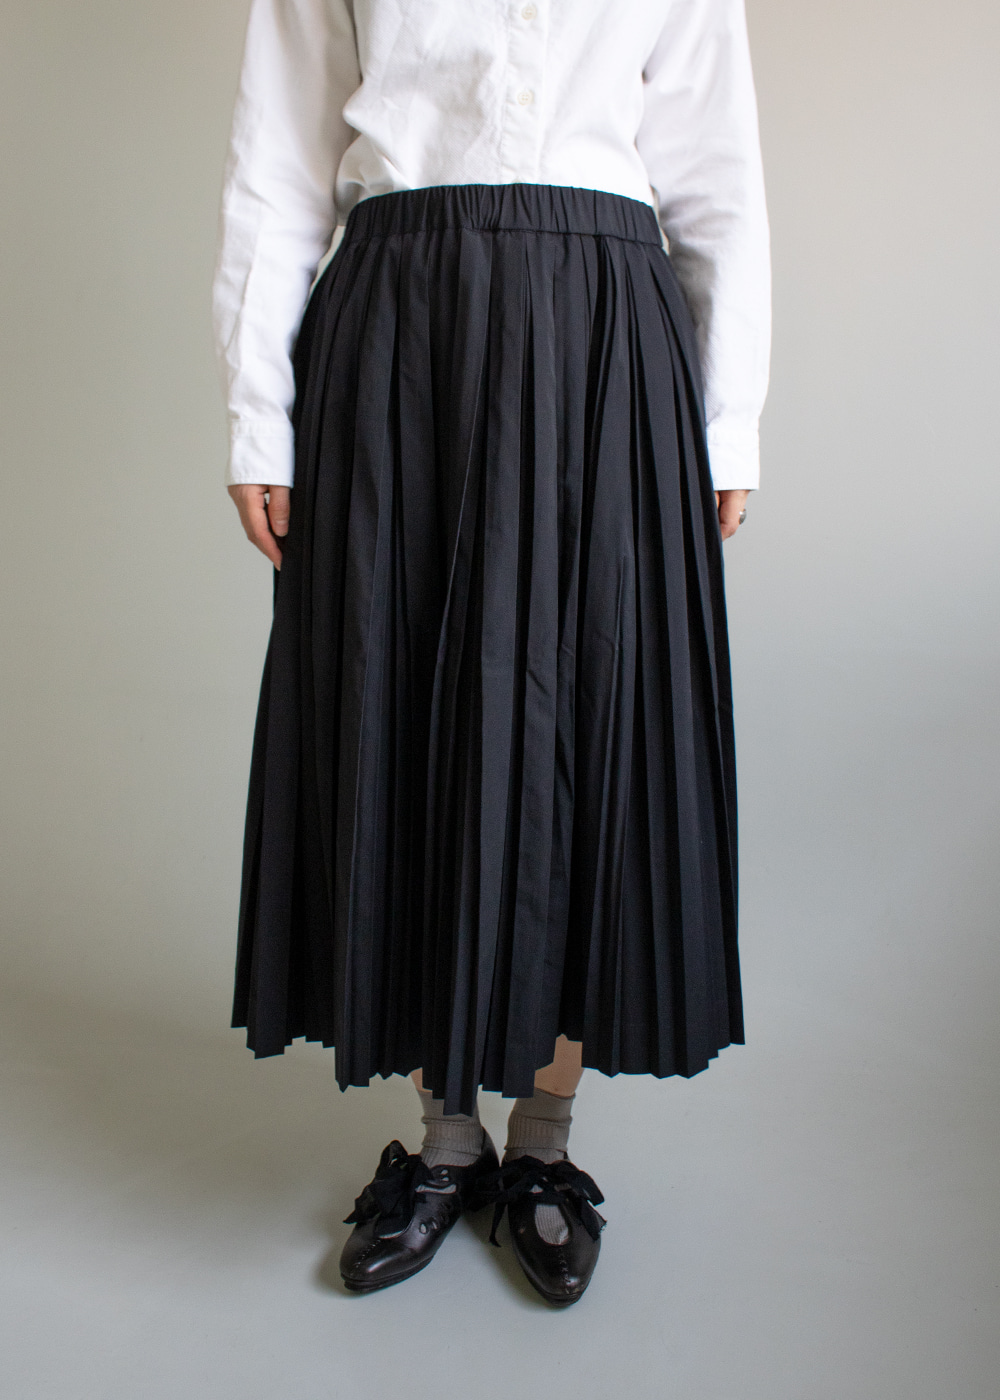 Plee Pleat 1 Skirt